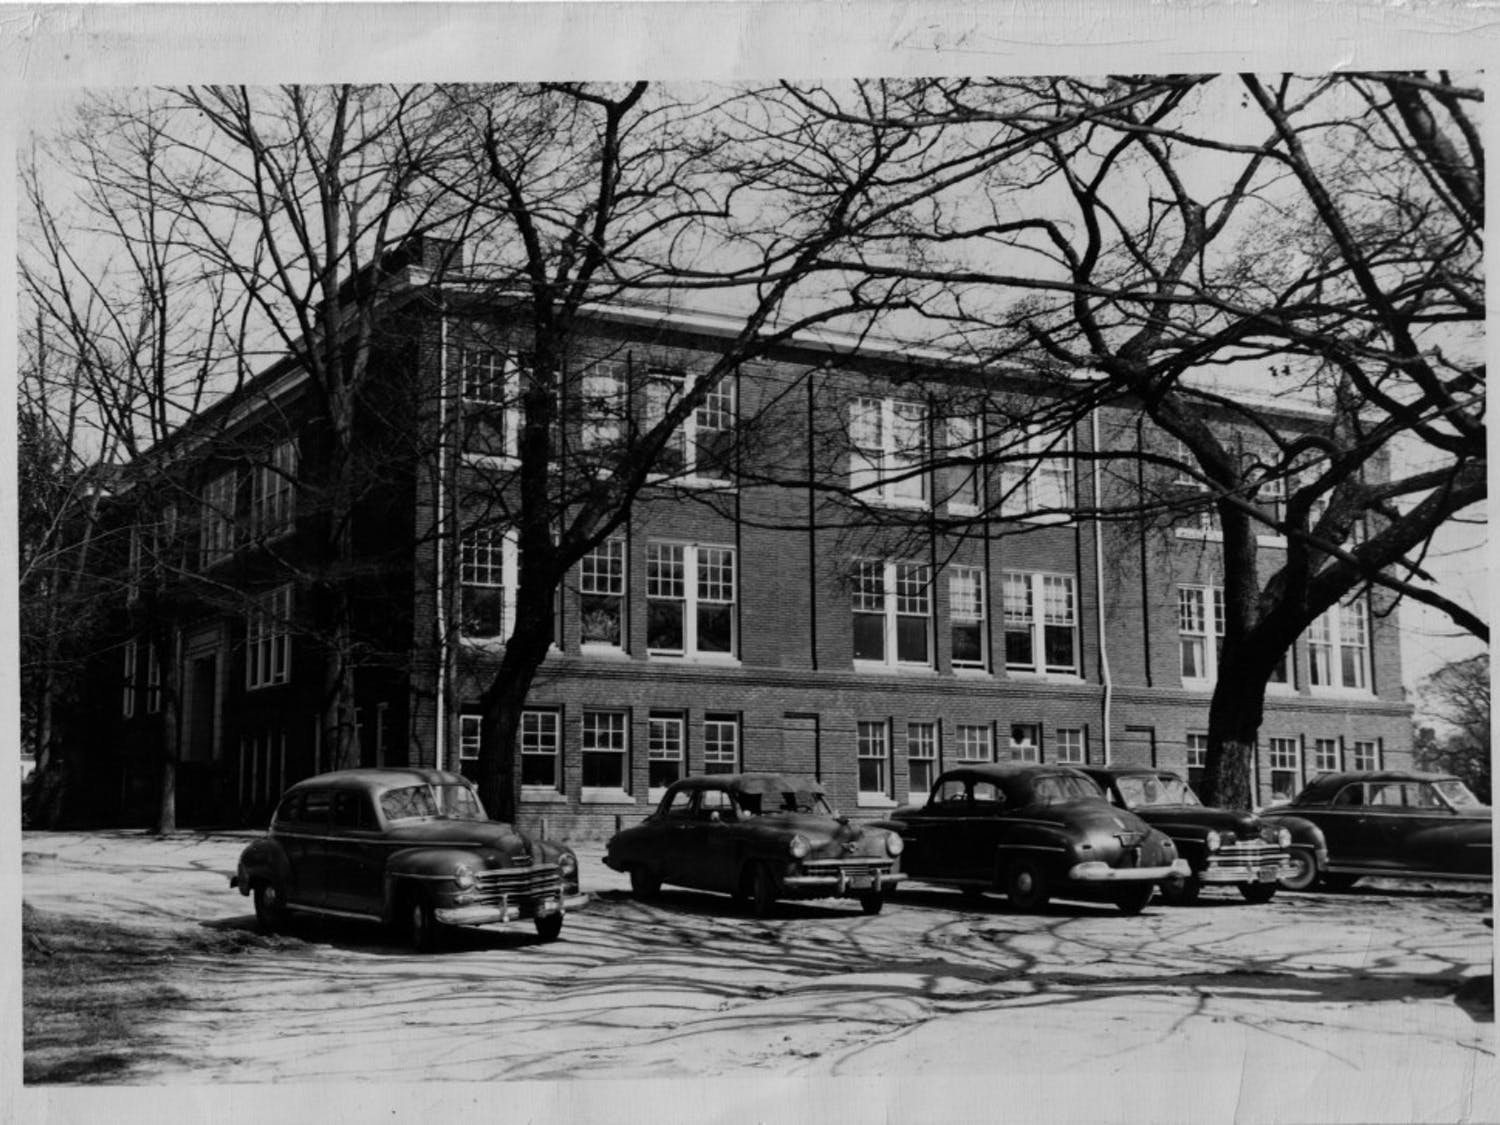 Chapel Hill High School stood on West Franklin Street between 1916-1936, where Carolina Square and Target are currently located. Photo courtesy of the Chapel Hill Historical Society.